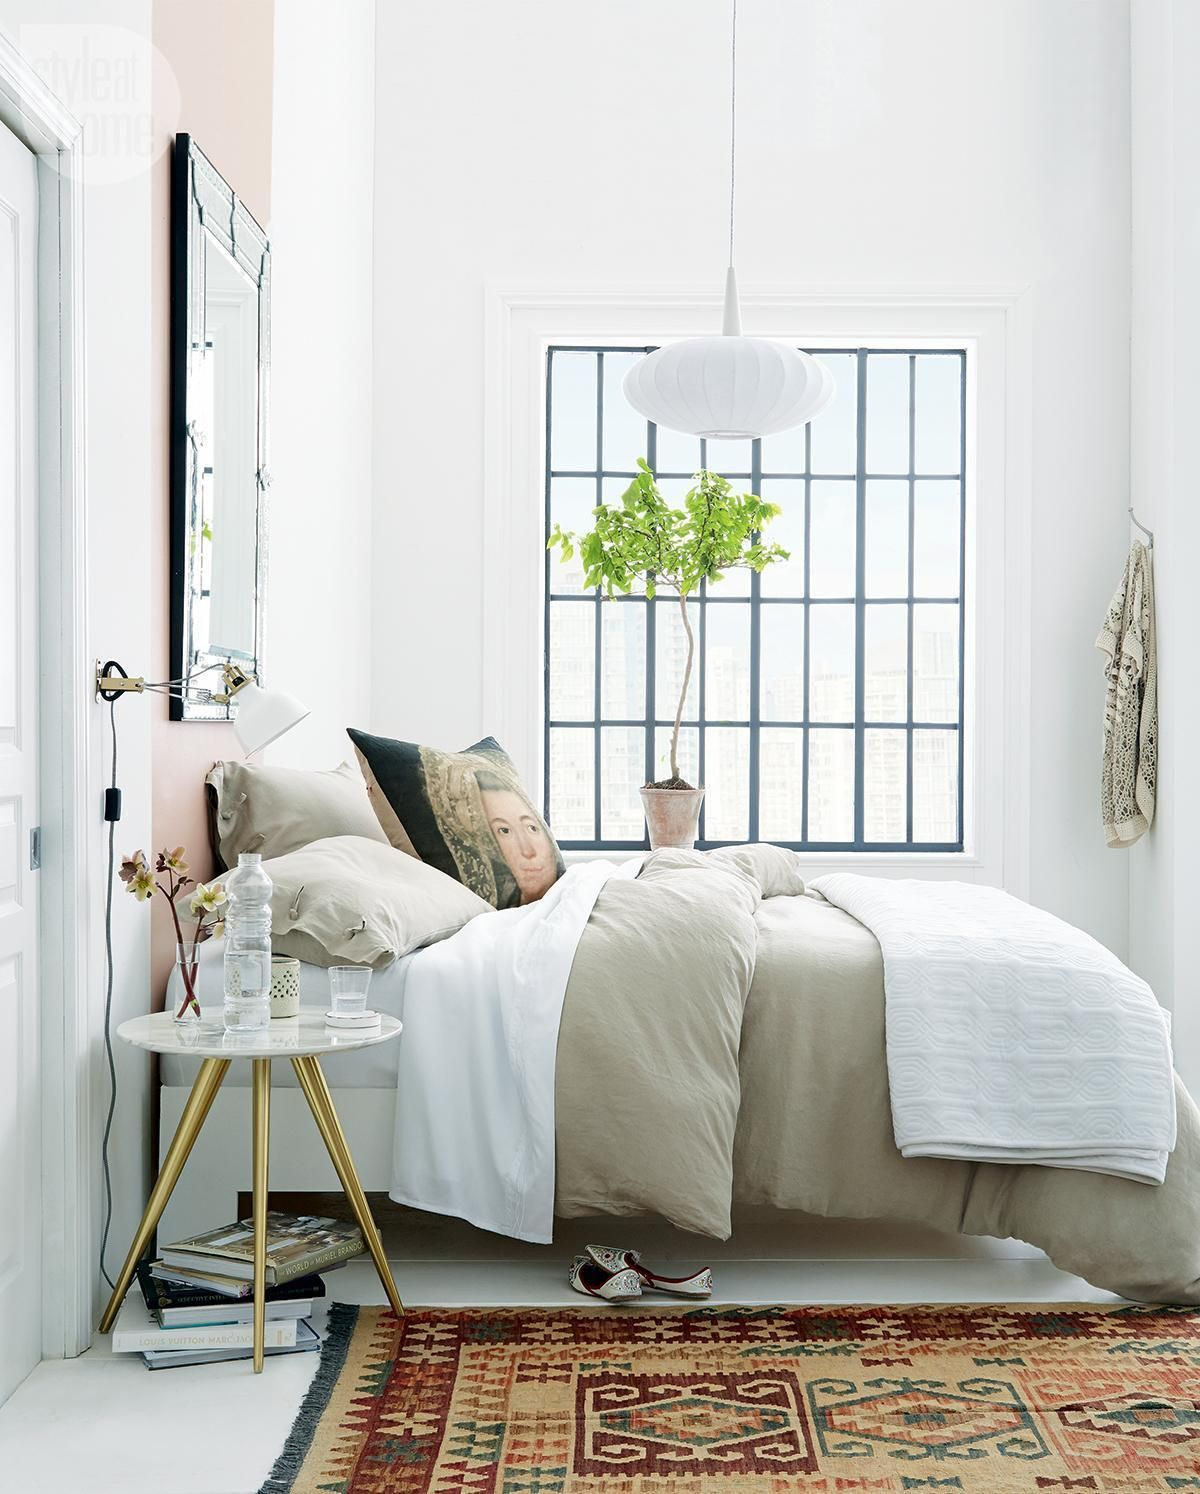 9 Ways to Transform Your Bedroom Into